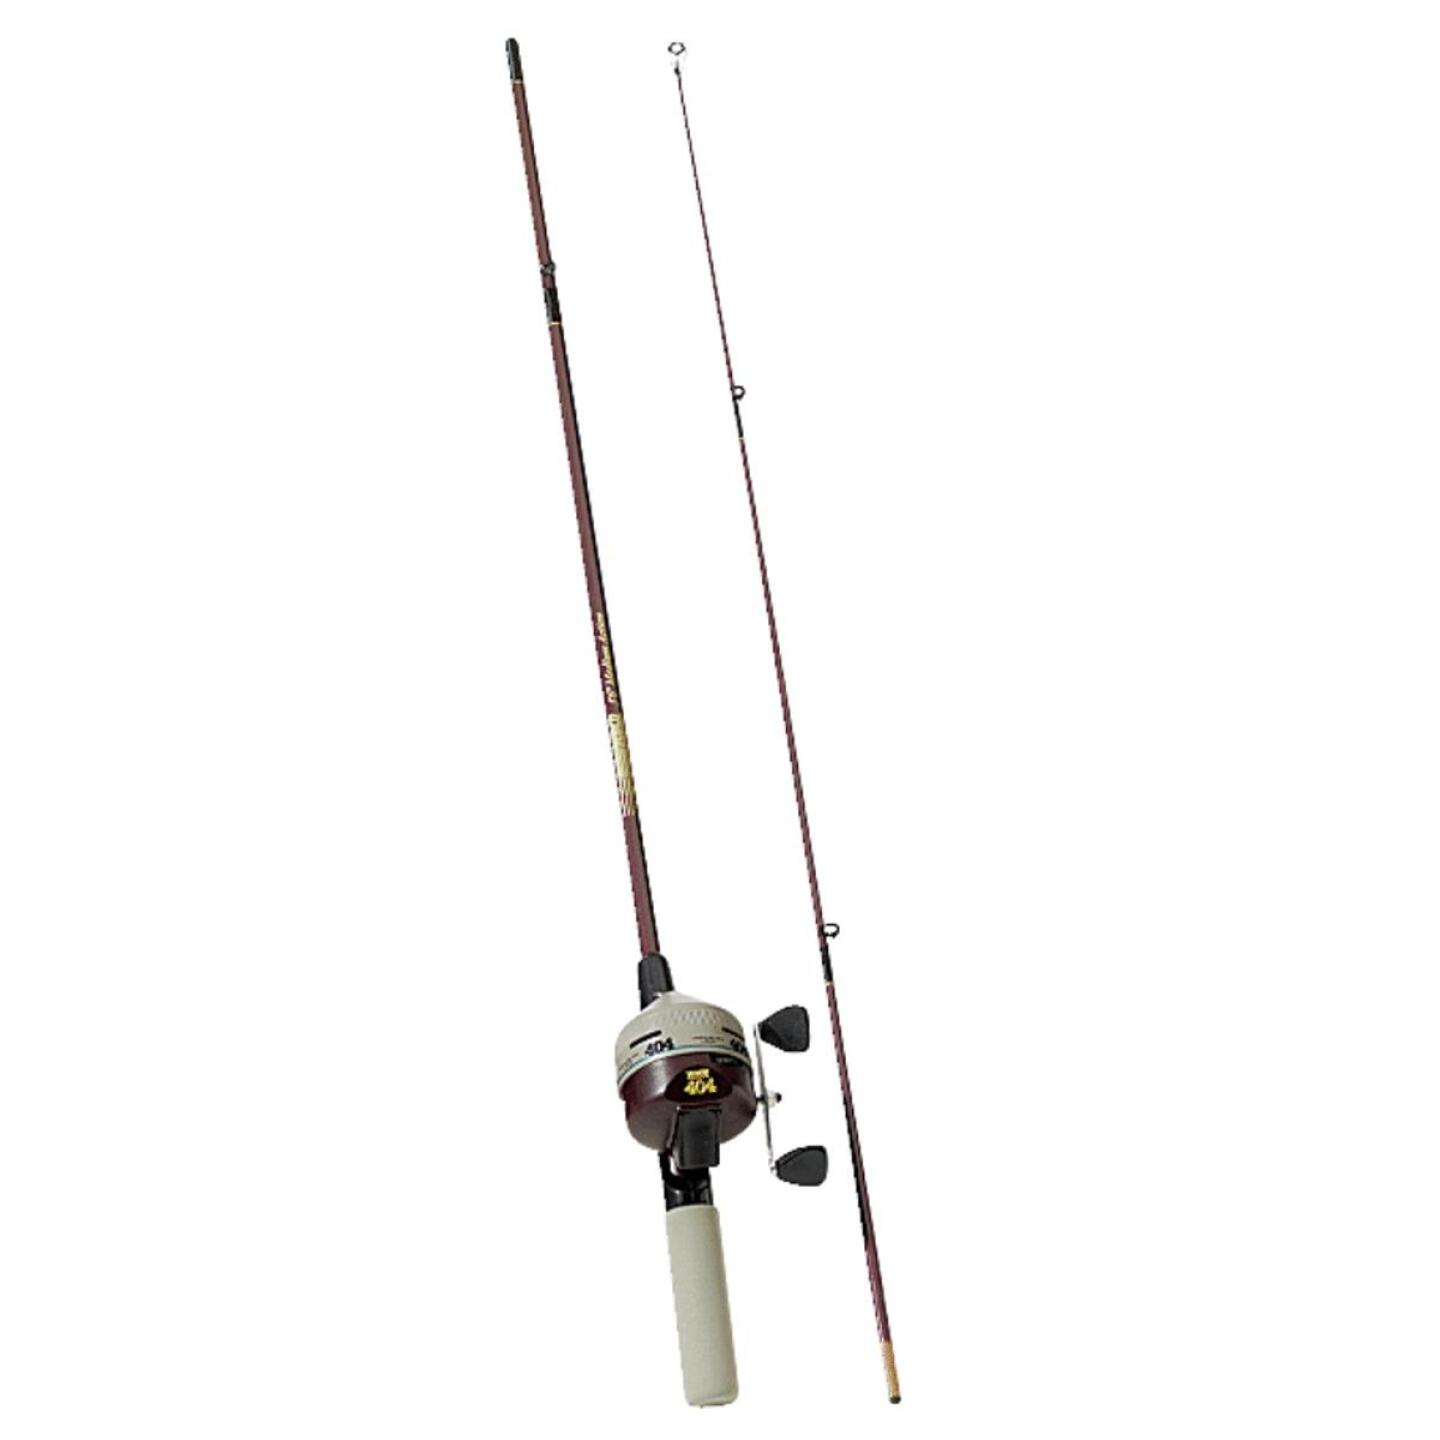 Zebco 404 5 Ft. 6 In. Z-Glass Fishing Rod & Spincast Reel Image 1